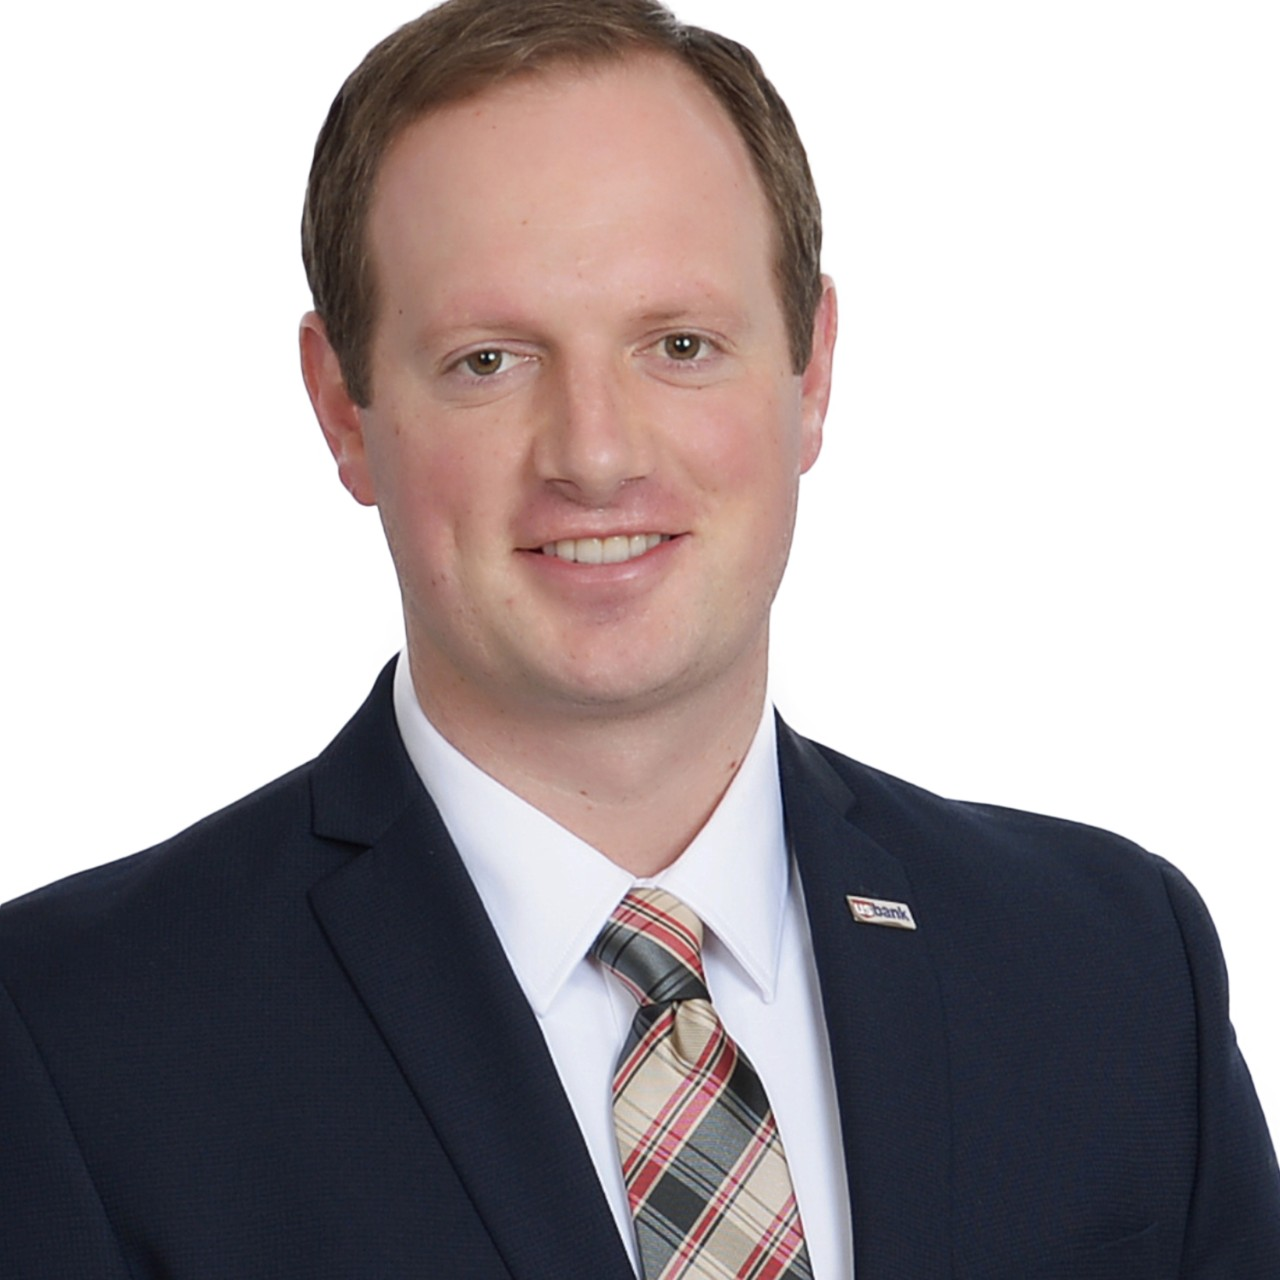 Ryan Malone | WM P/C Portfolio Manager | Boise, ID | U.S. Bancorp Wealth Management